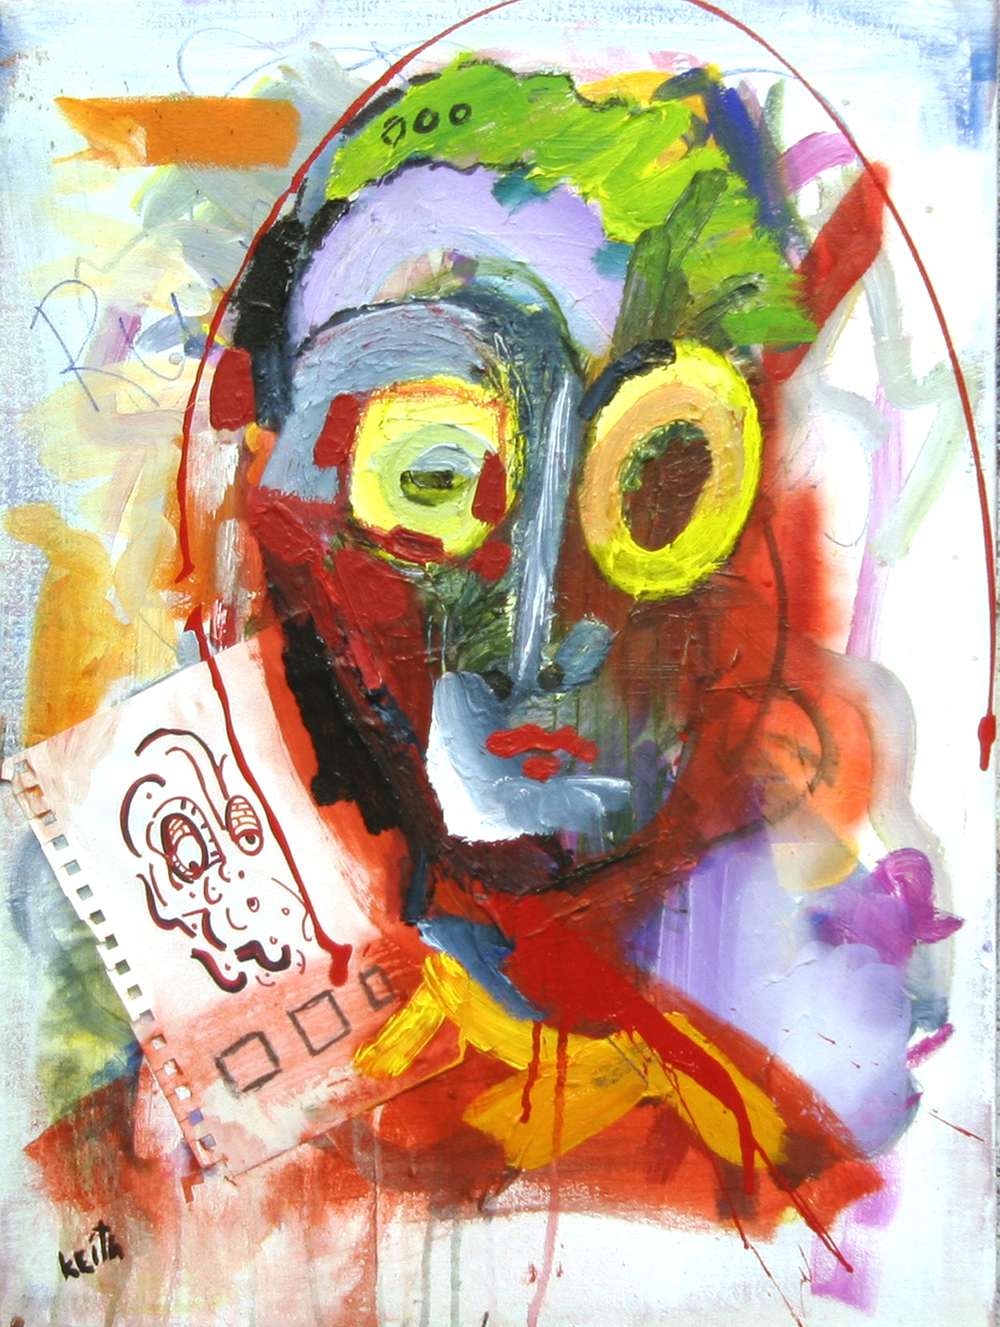 "'portrait .44' 20 x 16"", acrylic, oil, paper on canvas   AVAILABLE"